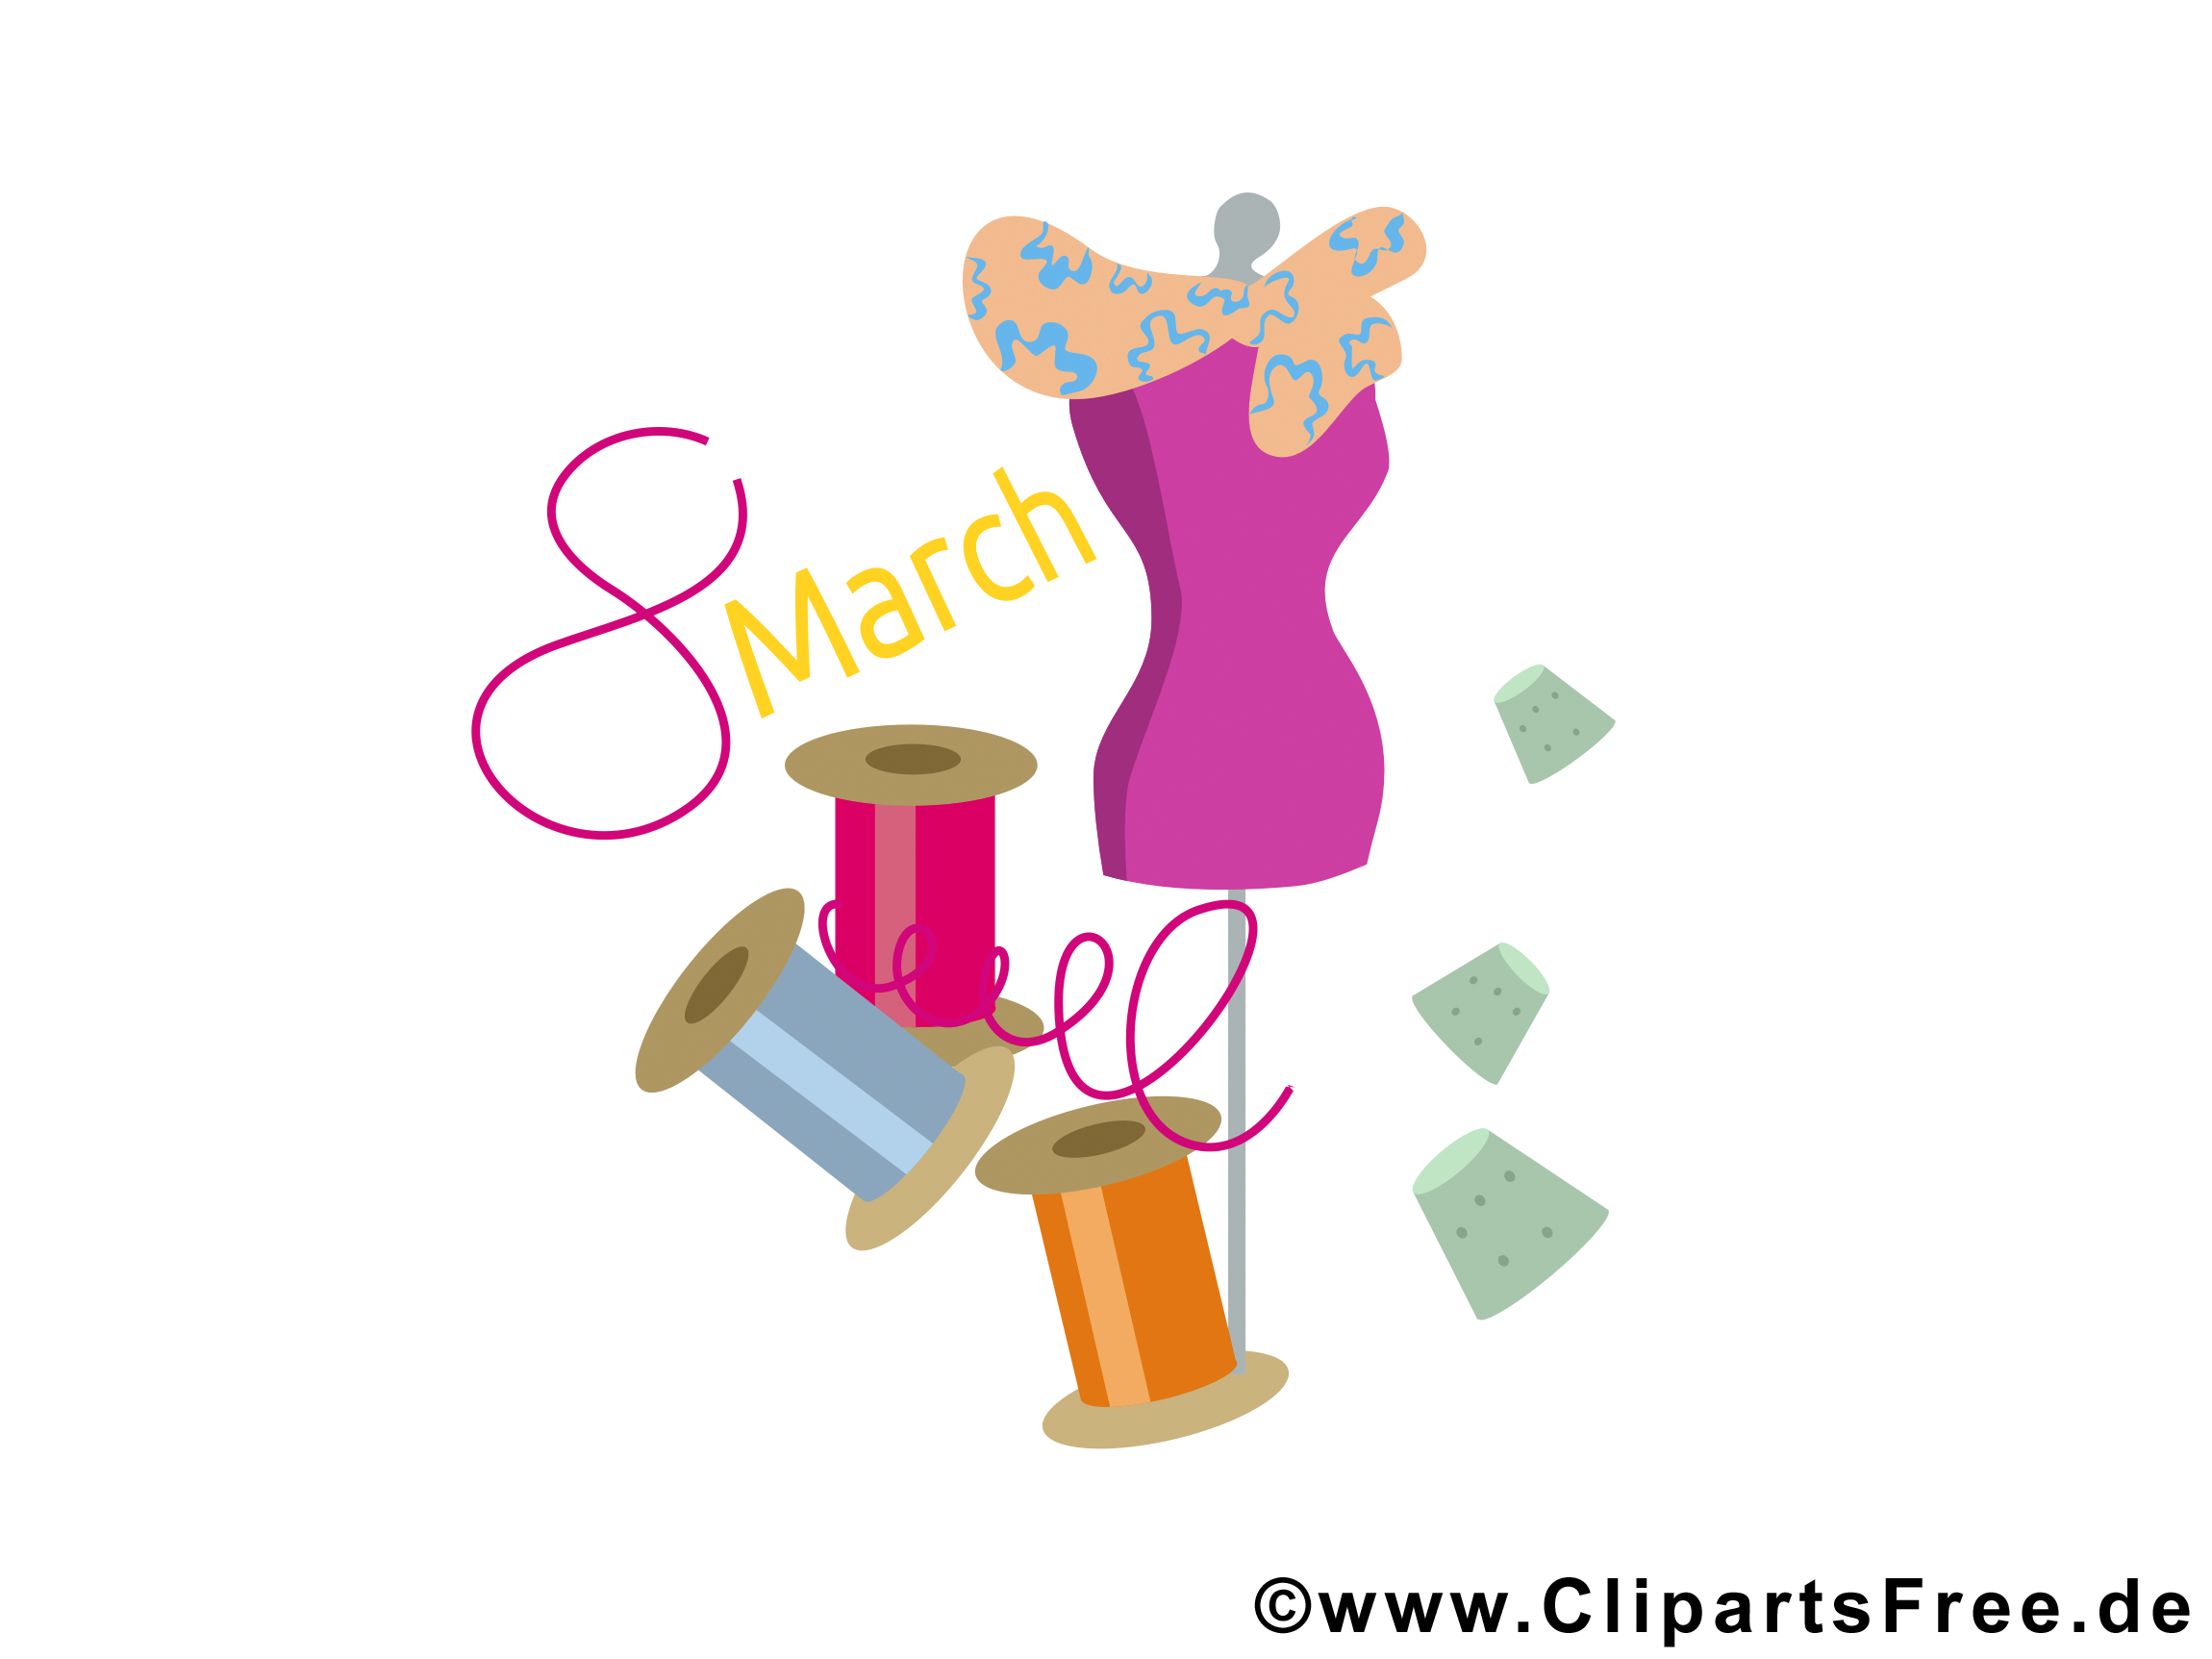 Clipart Weltfrauentag